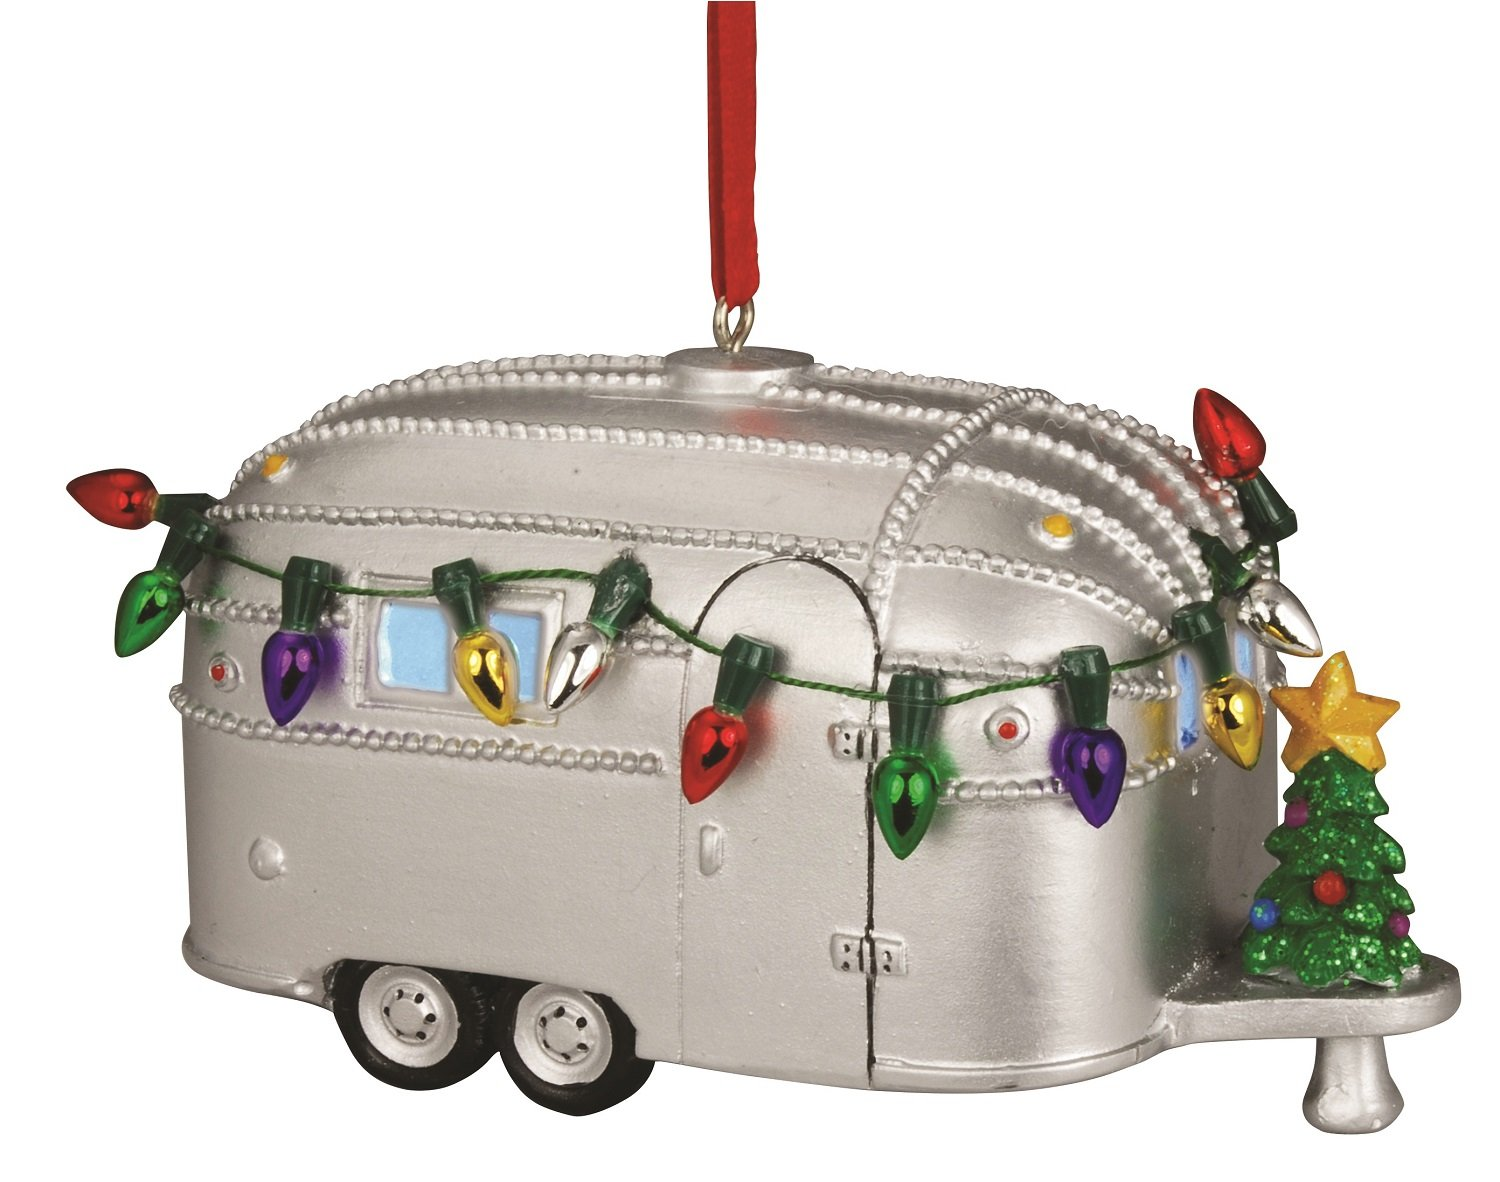 Retro Metal Christmas Camper Ornament. Here are some of the best Vintage Christmas Decor Ideas I've found this year. #AbbottsAtHome #ChristmasDecor #ChristmasIdeas